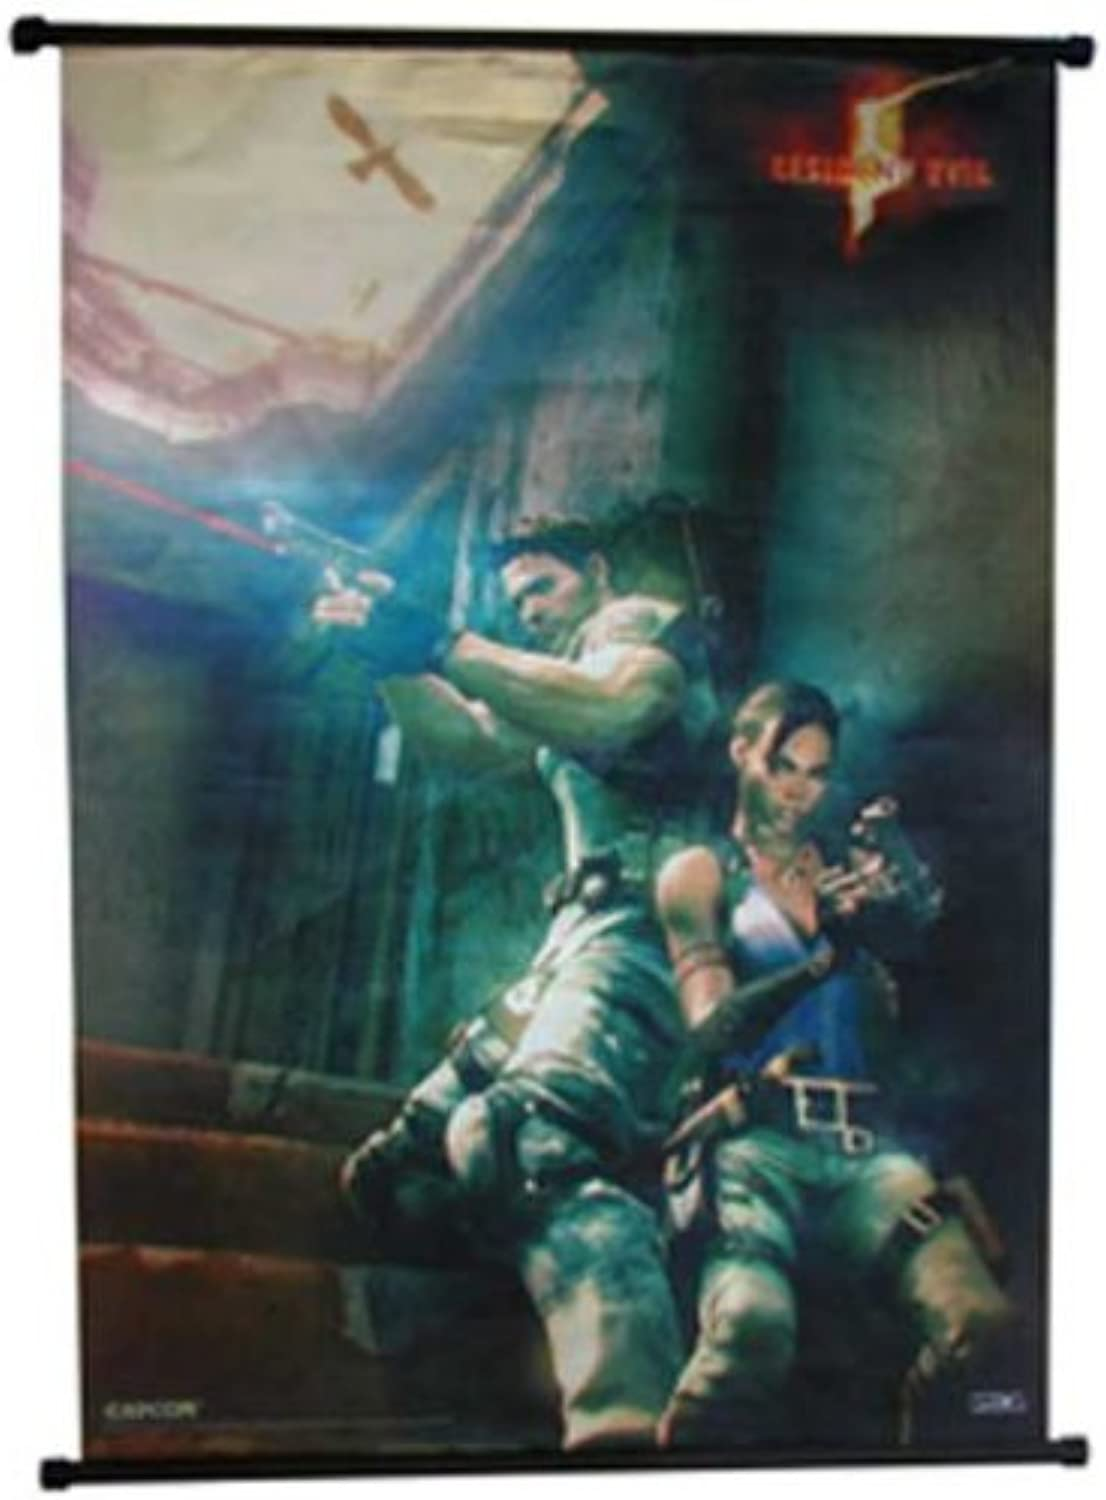 Resident Evil 5 Wall Scroll (Up Against the Wall)